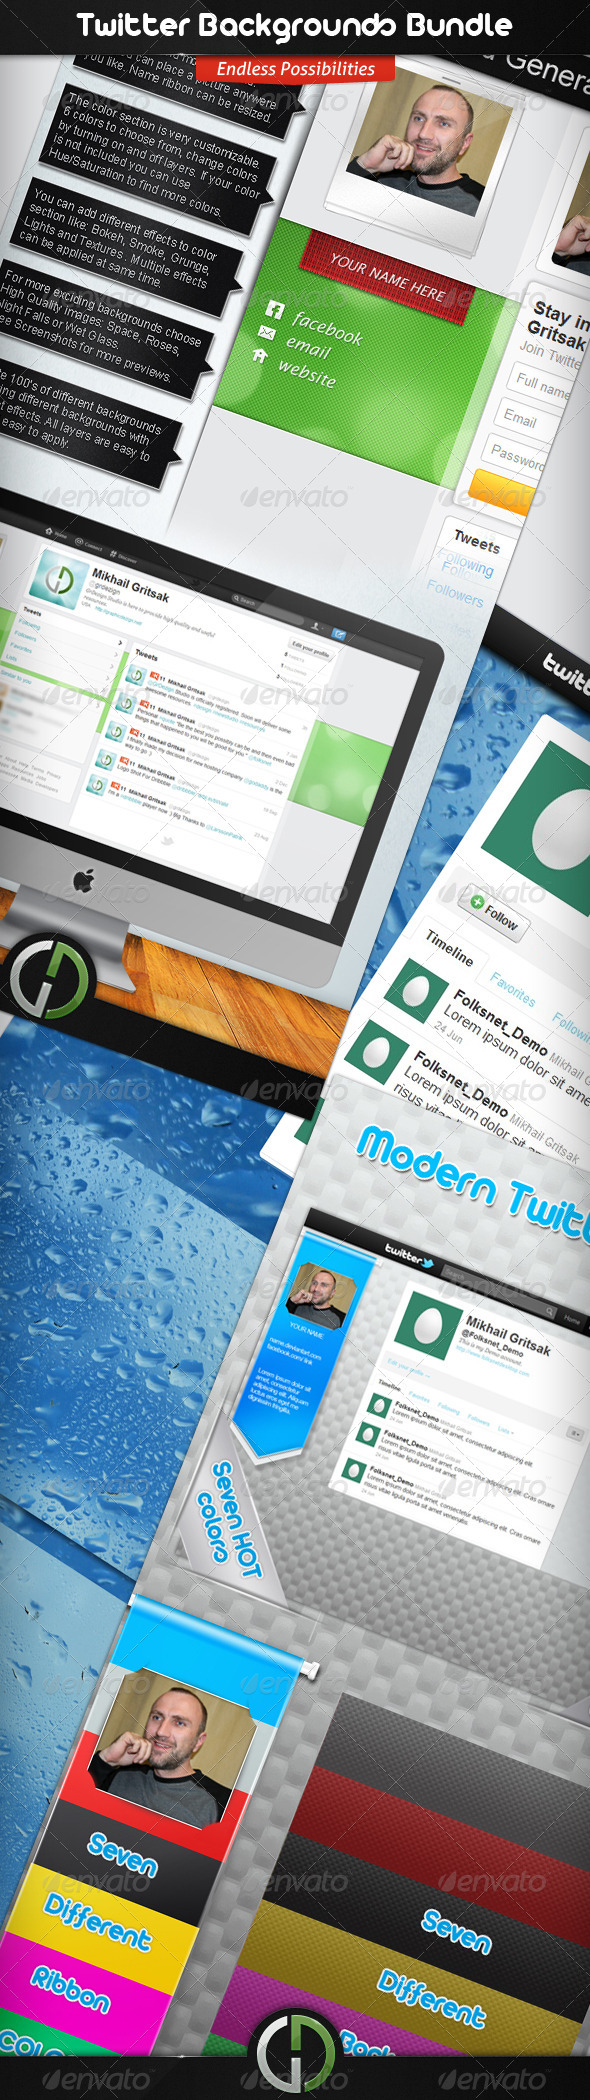 GraphicRiver Twitter Backgrounds Bundle 2022912